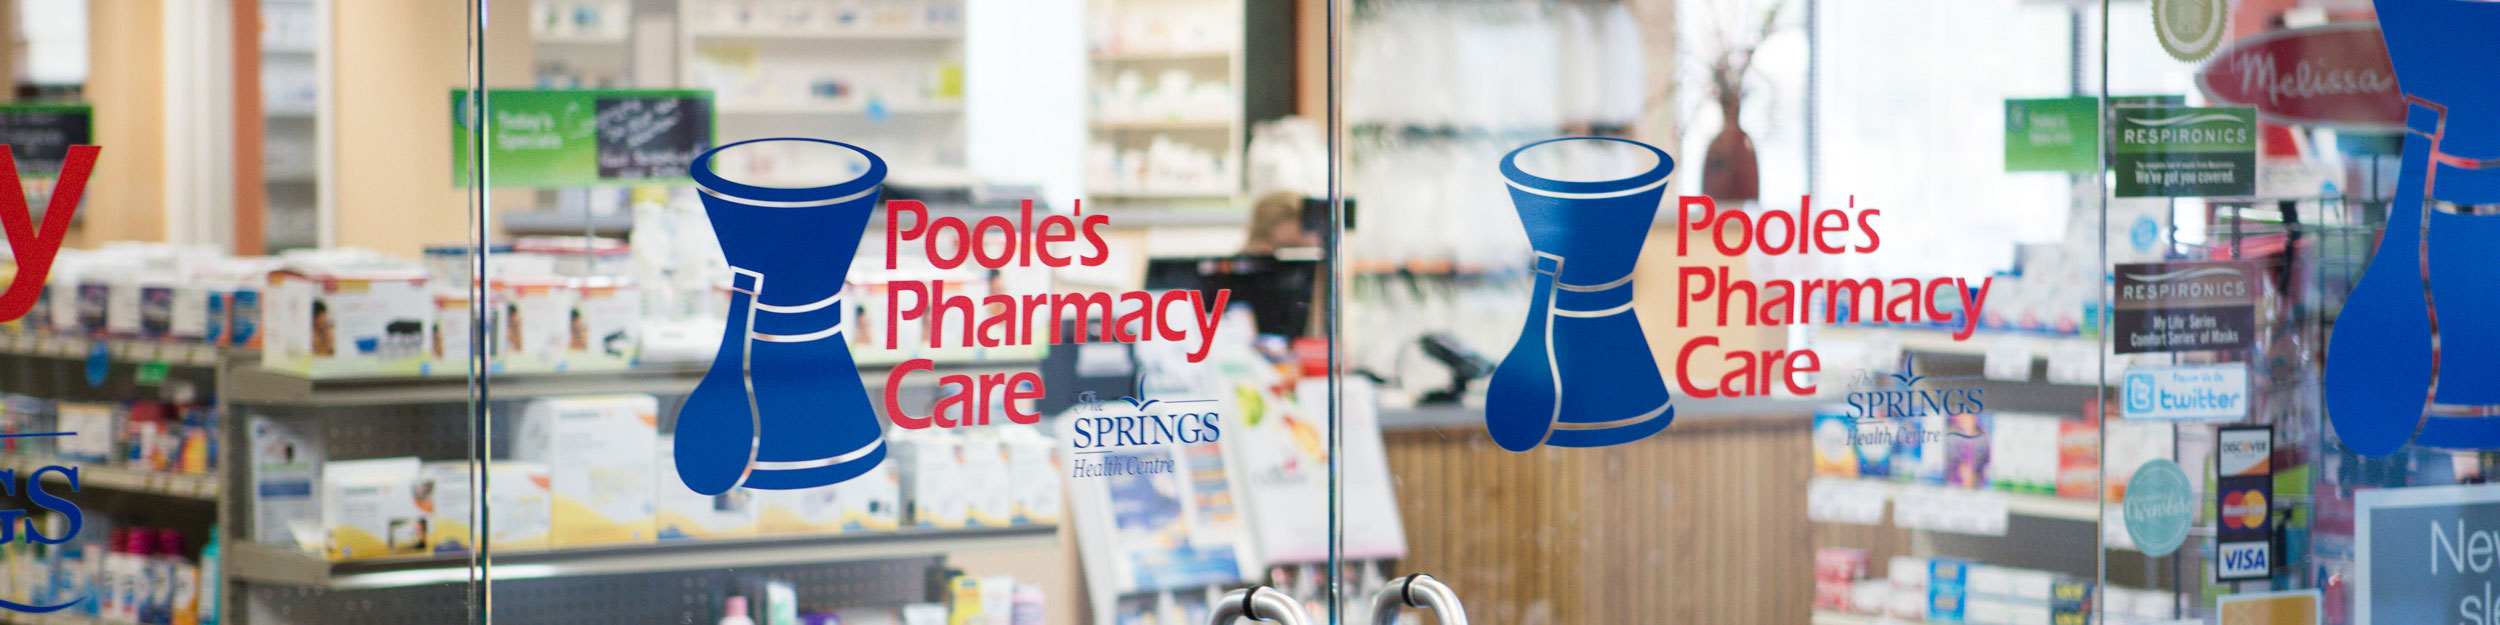 4b070ff6d82 Locations - Poole s Pharmacy Care